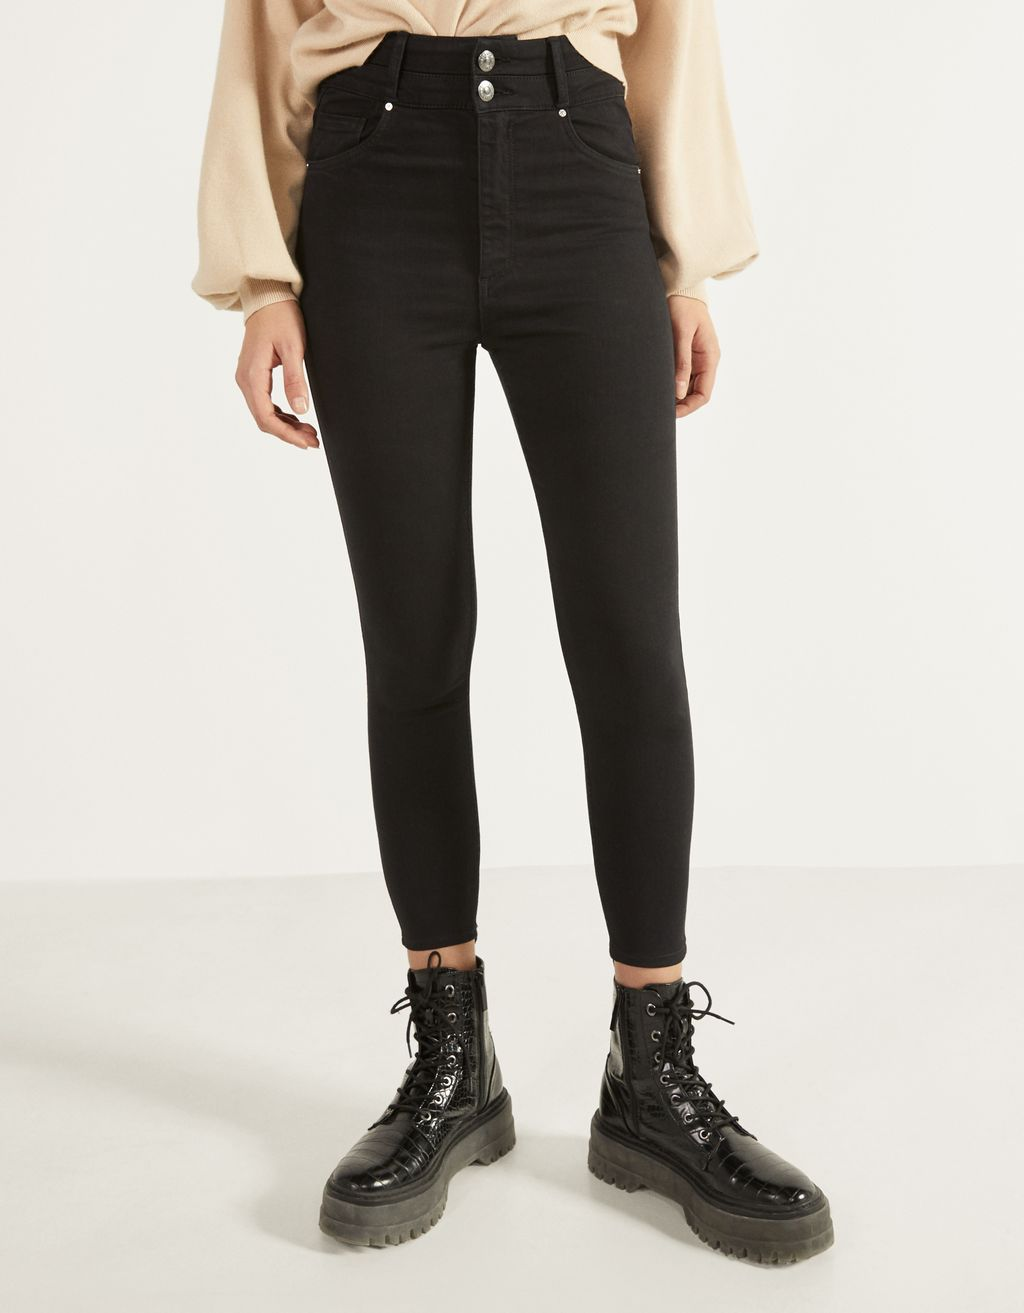 Super High Waist trousers